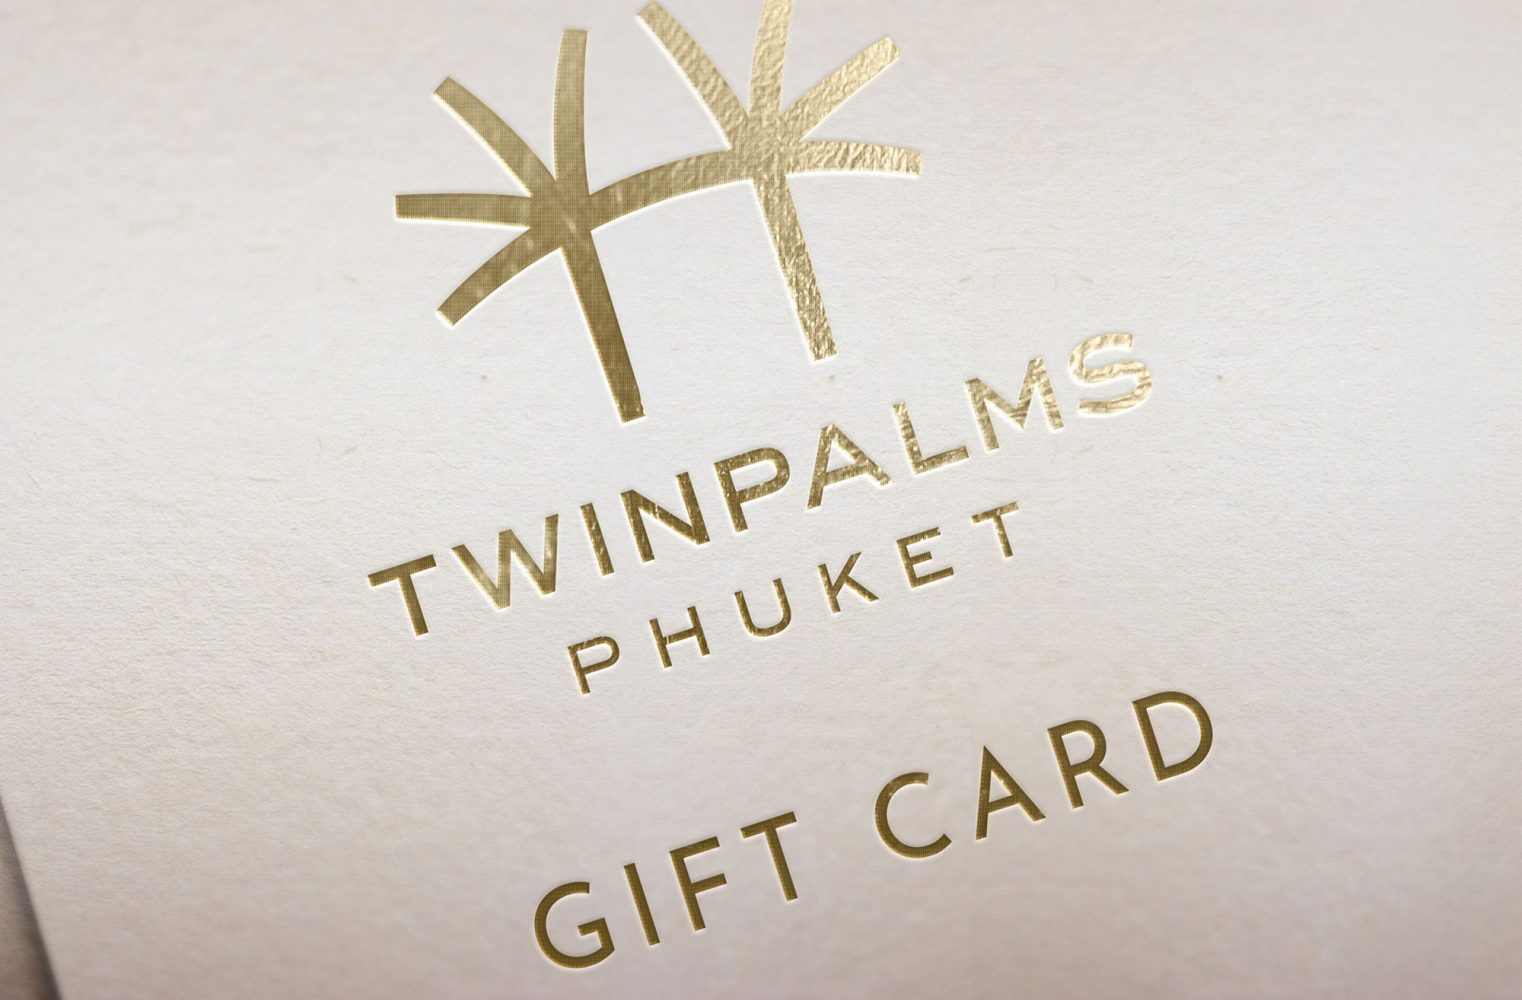 Twinpalms Gift Card